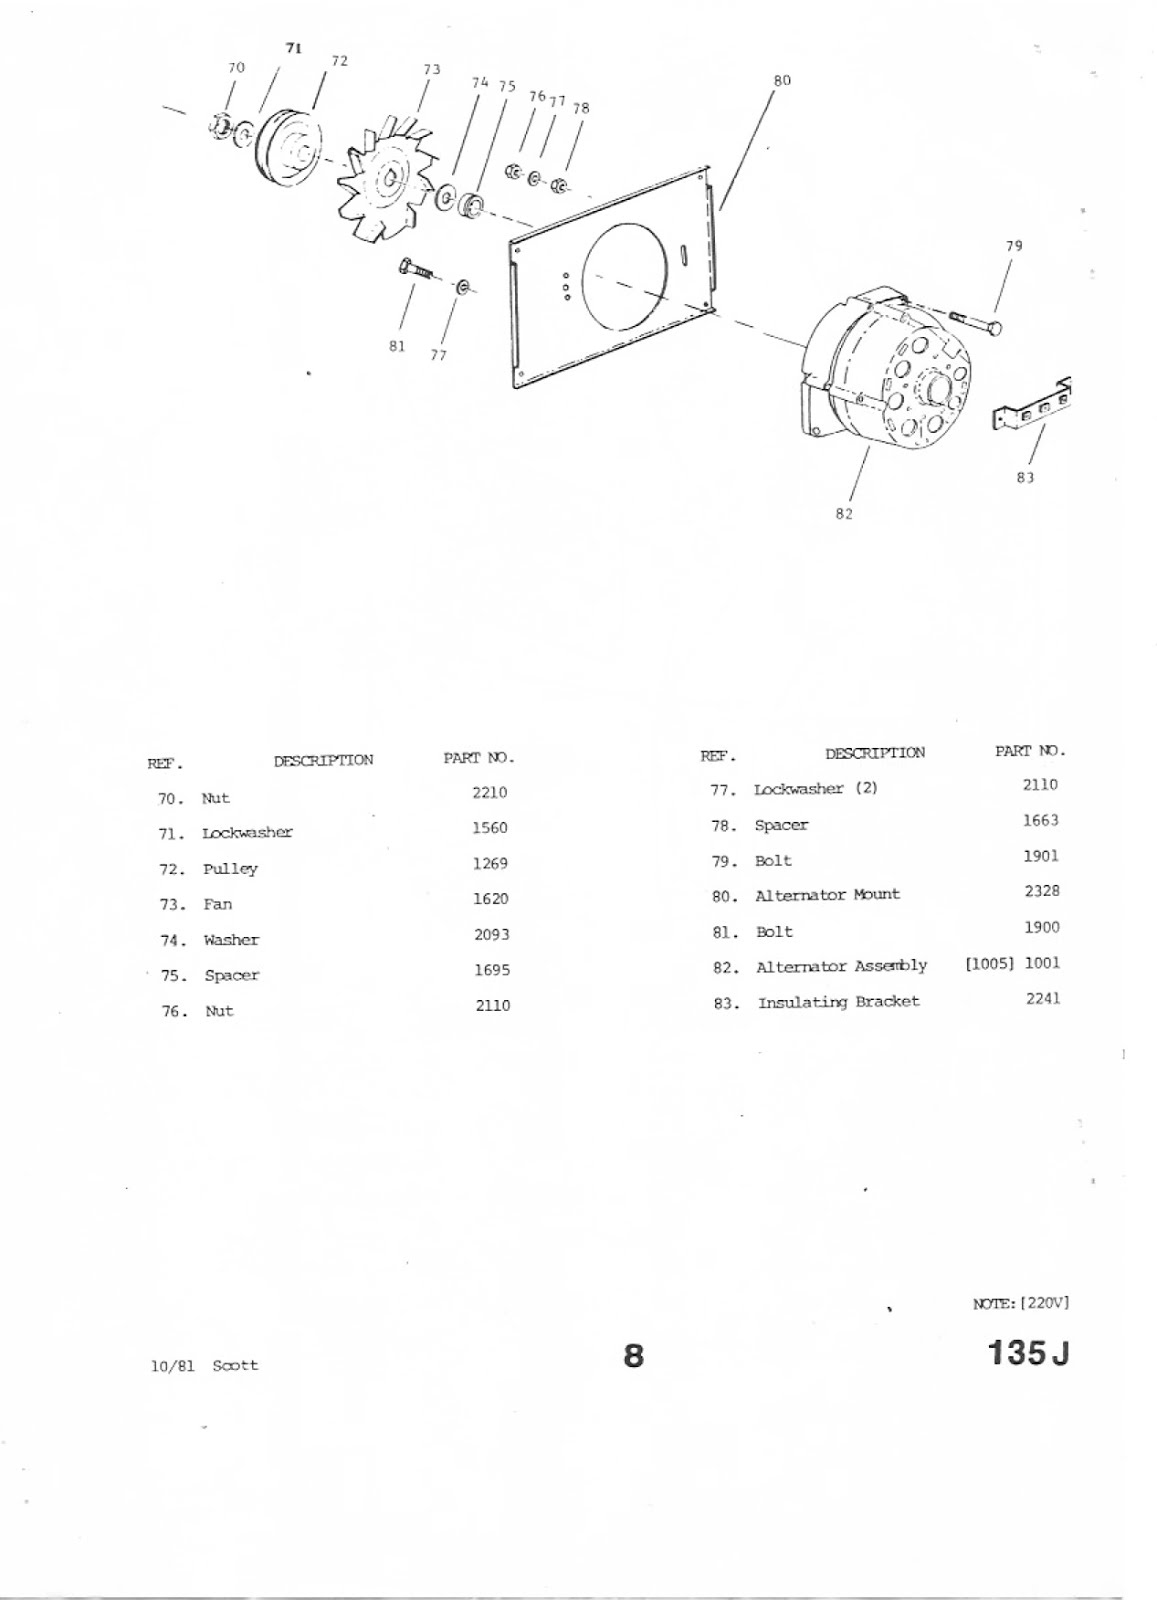 Bruce Teakles Pages Scott Welder Portable 135a Petrol Engine How To Read A Welding Diagram Download The 135 Amp Maintenance Manual As Pdf Document Use This Link